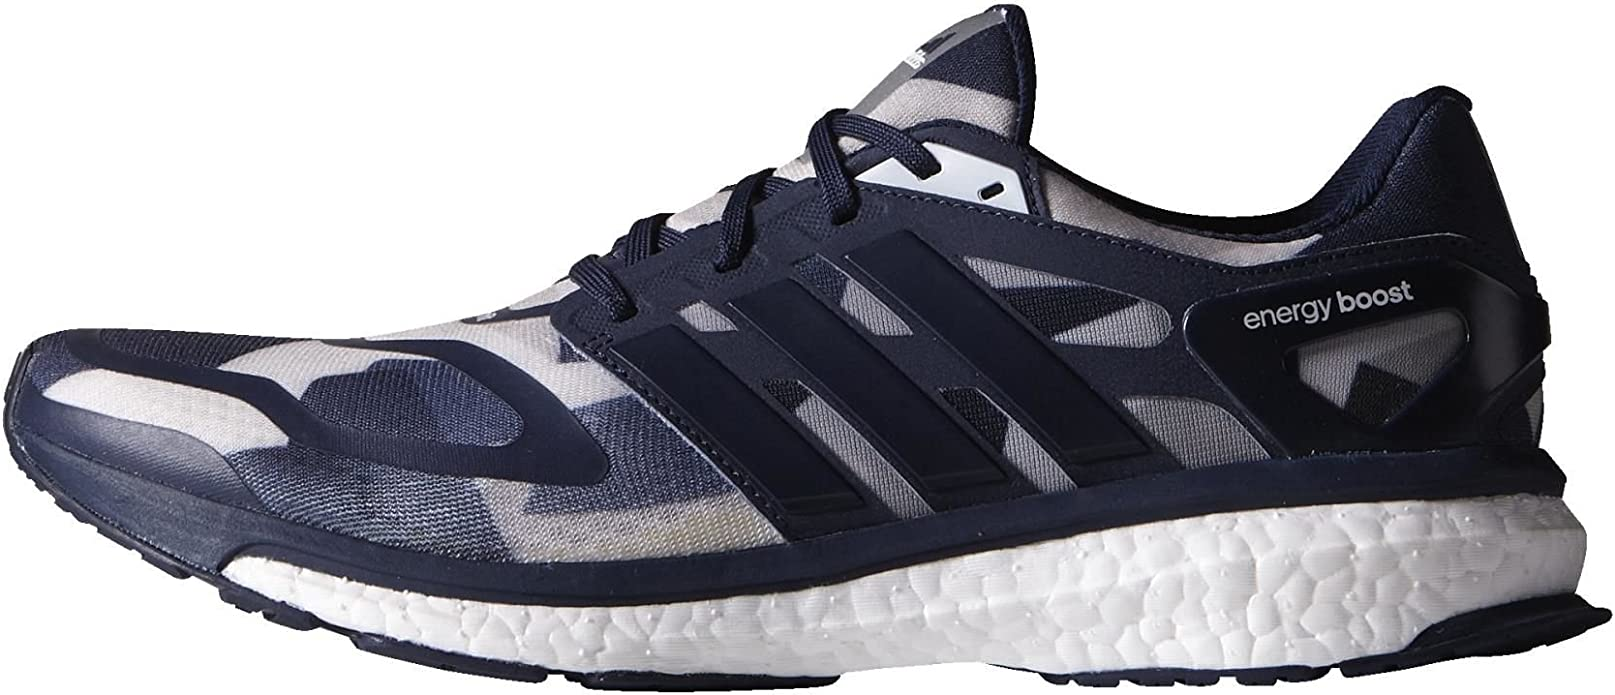 Adidas Energy Boost Ltd, navy white silver, Multicolor, 7,5: Amazon.es: Zapatos y complementos